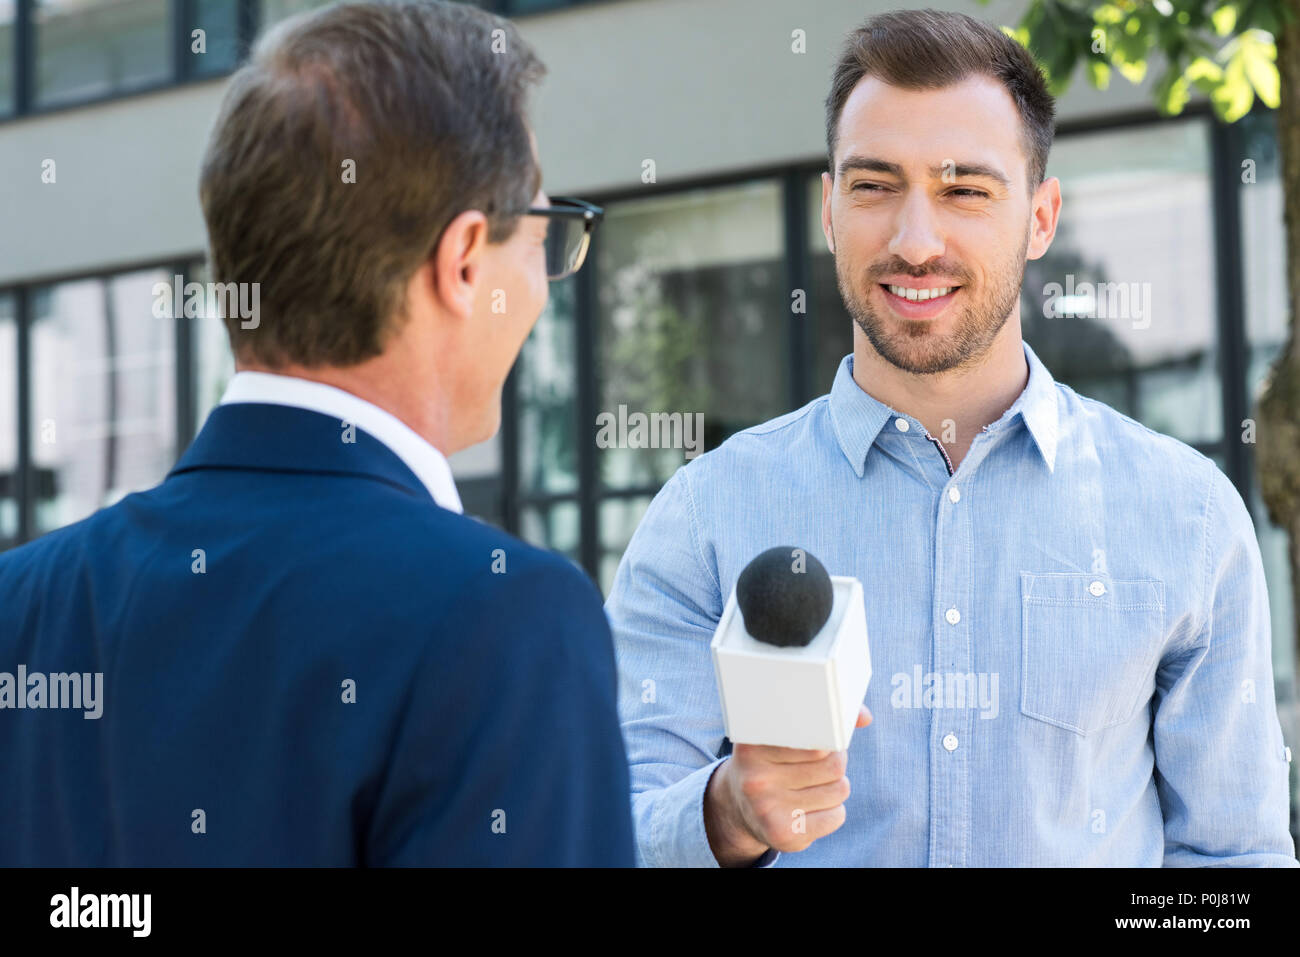 professional news reporter interviewing successful businessman with microphone - Stock Image